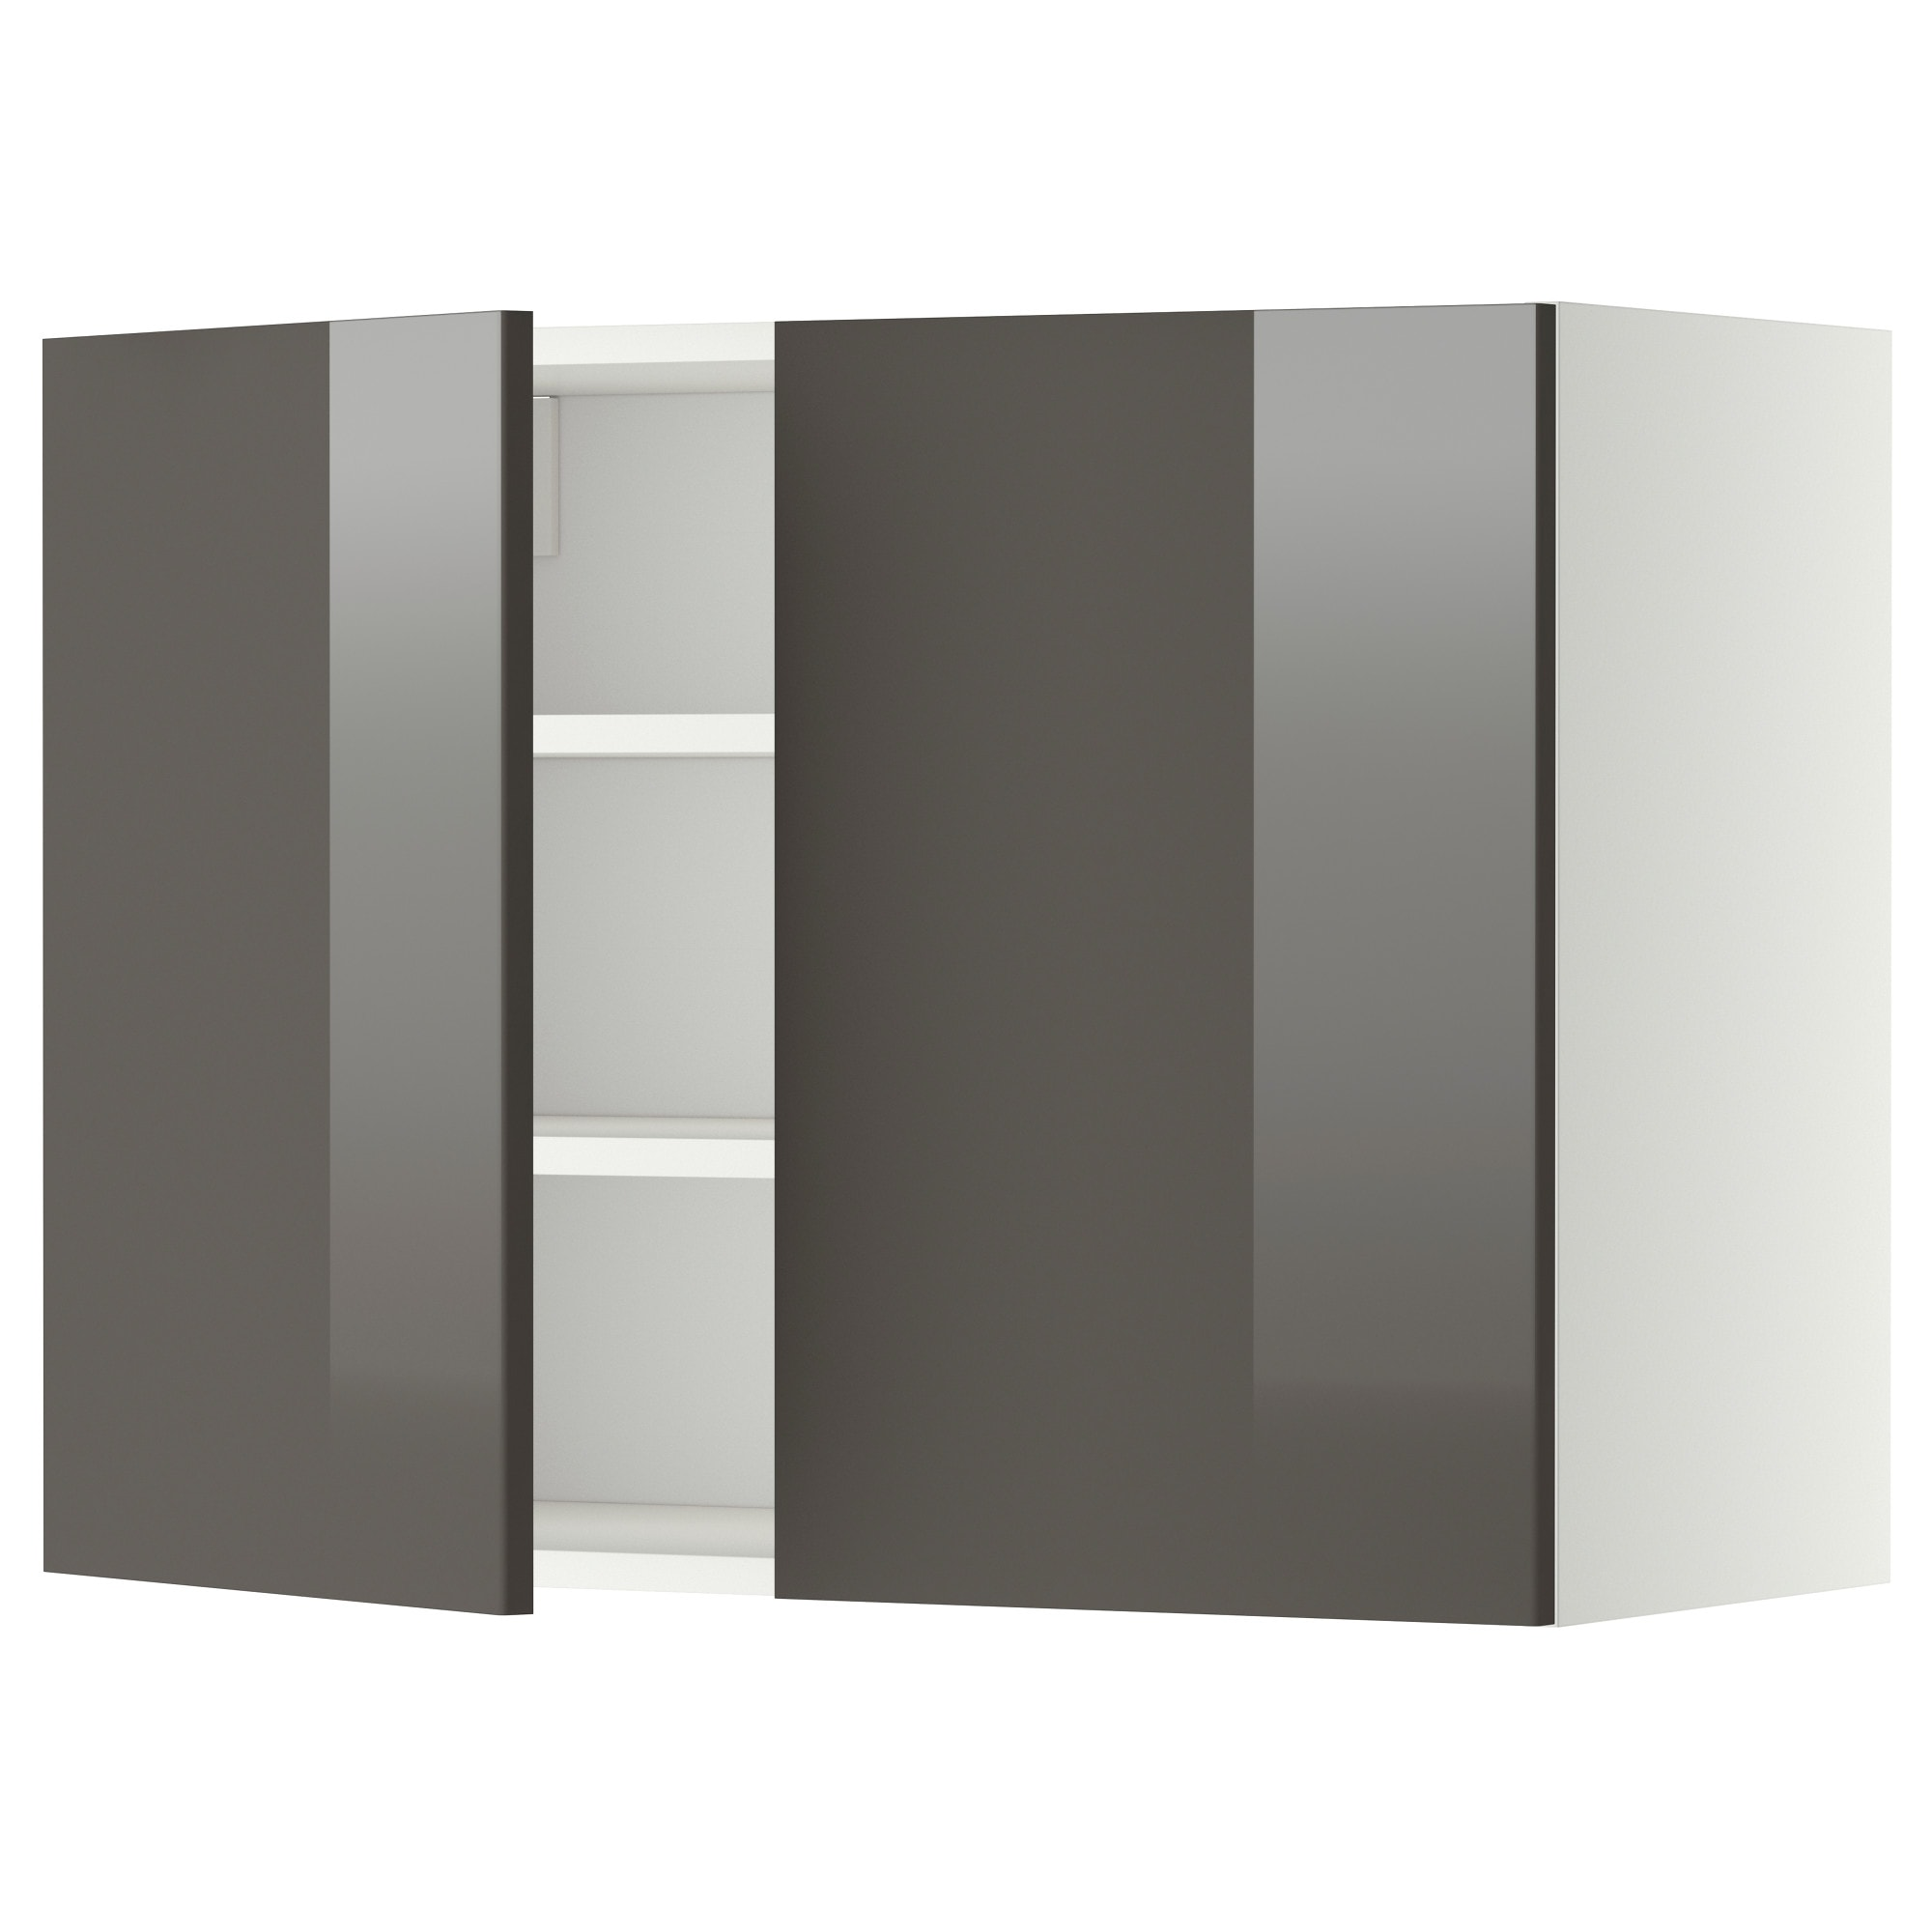 armoire designe armoire informatique ferm conforama dernier cabinet id es pour la maison. Black Bedroom Furniture Sets. Home Design Ideas